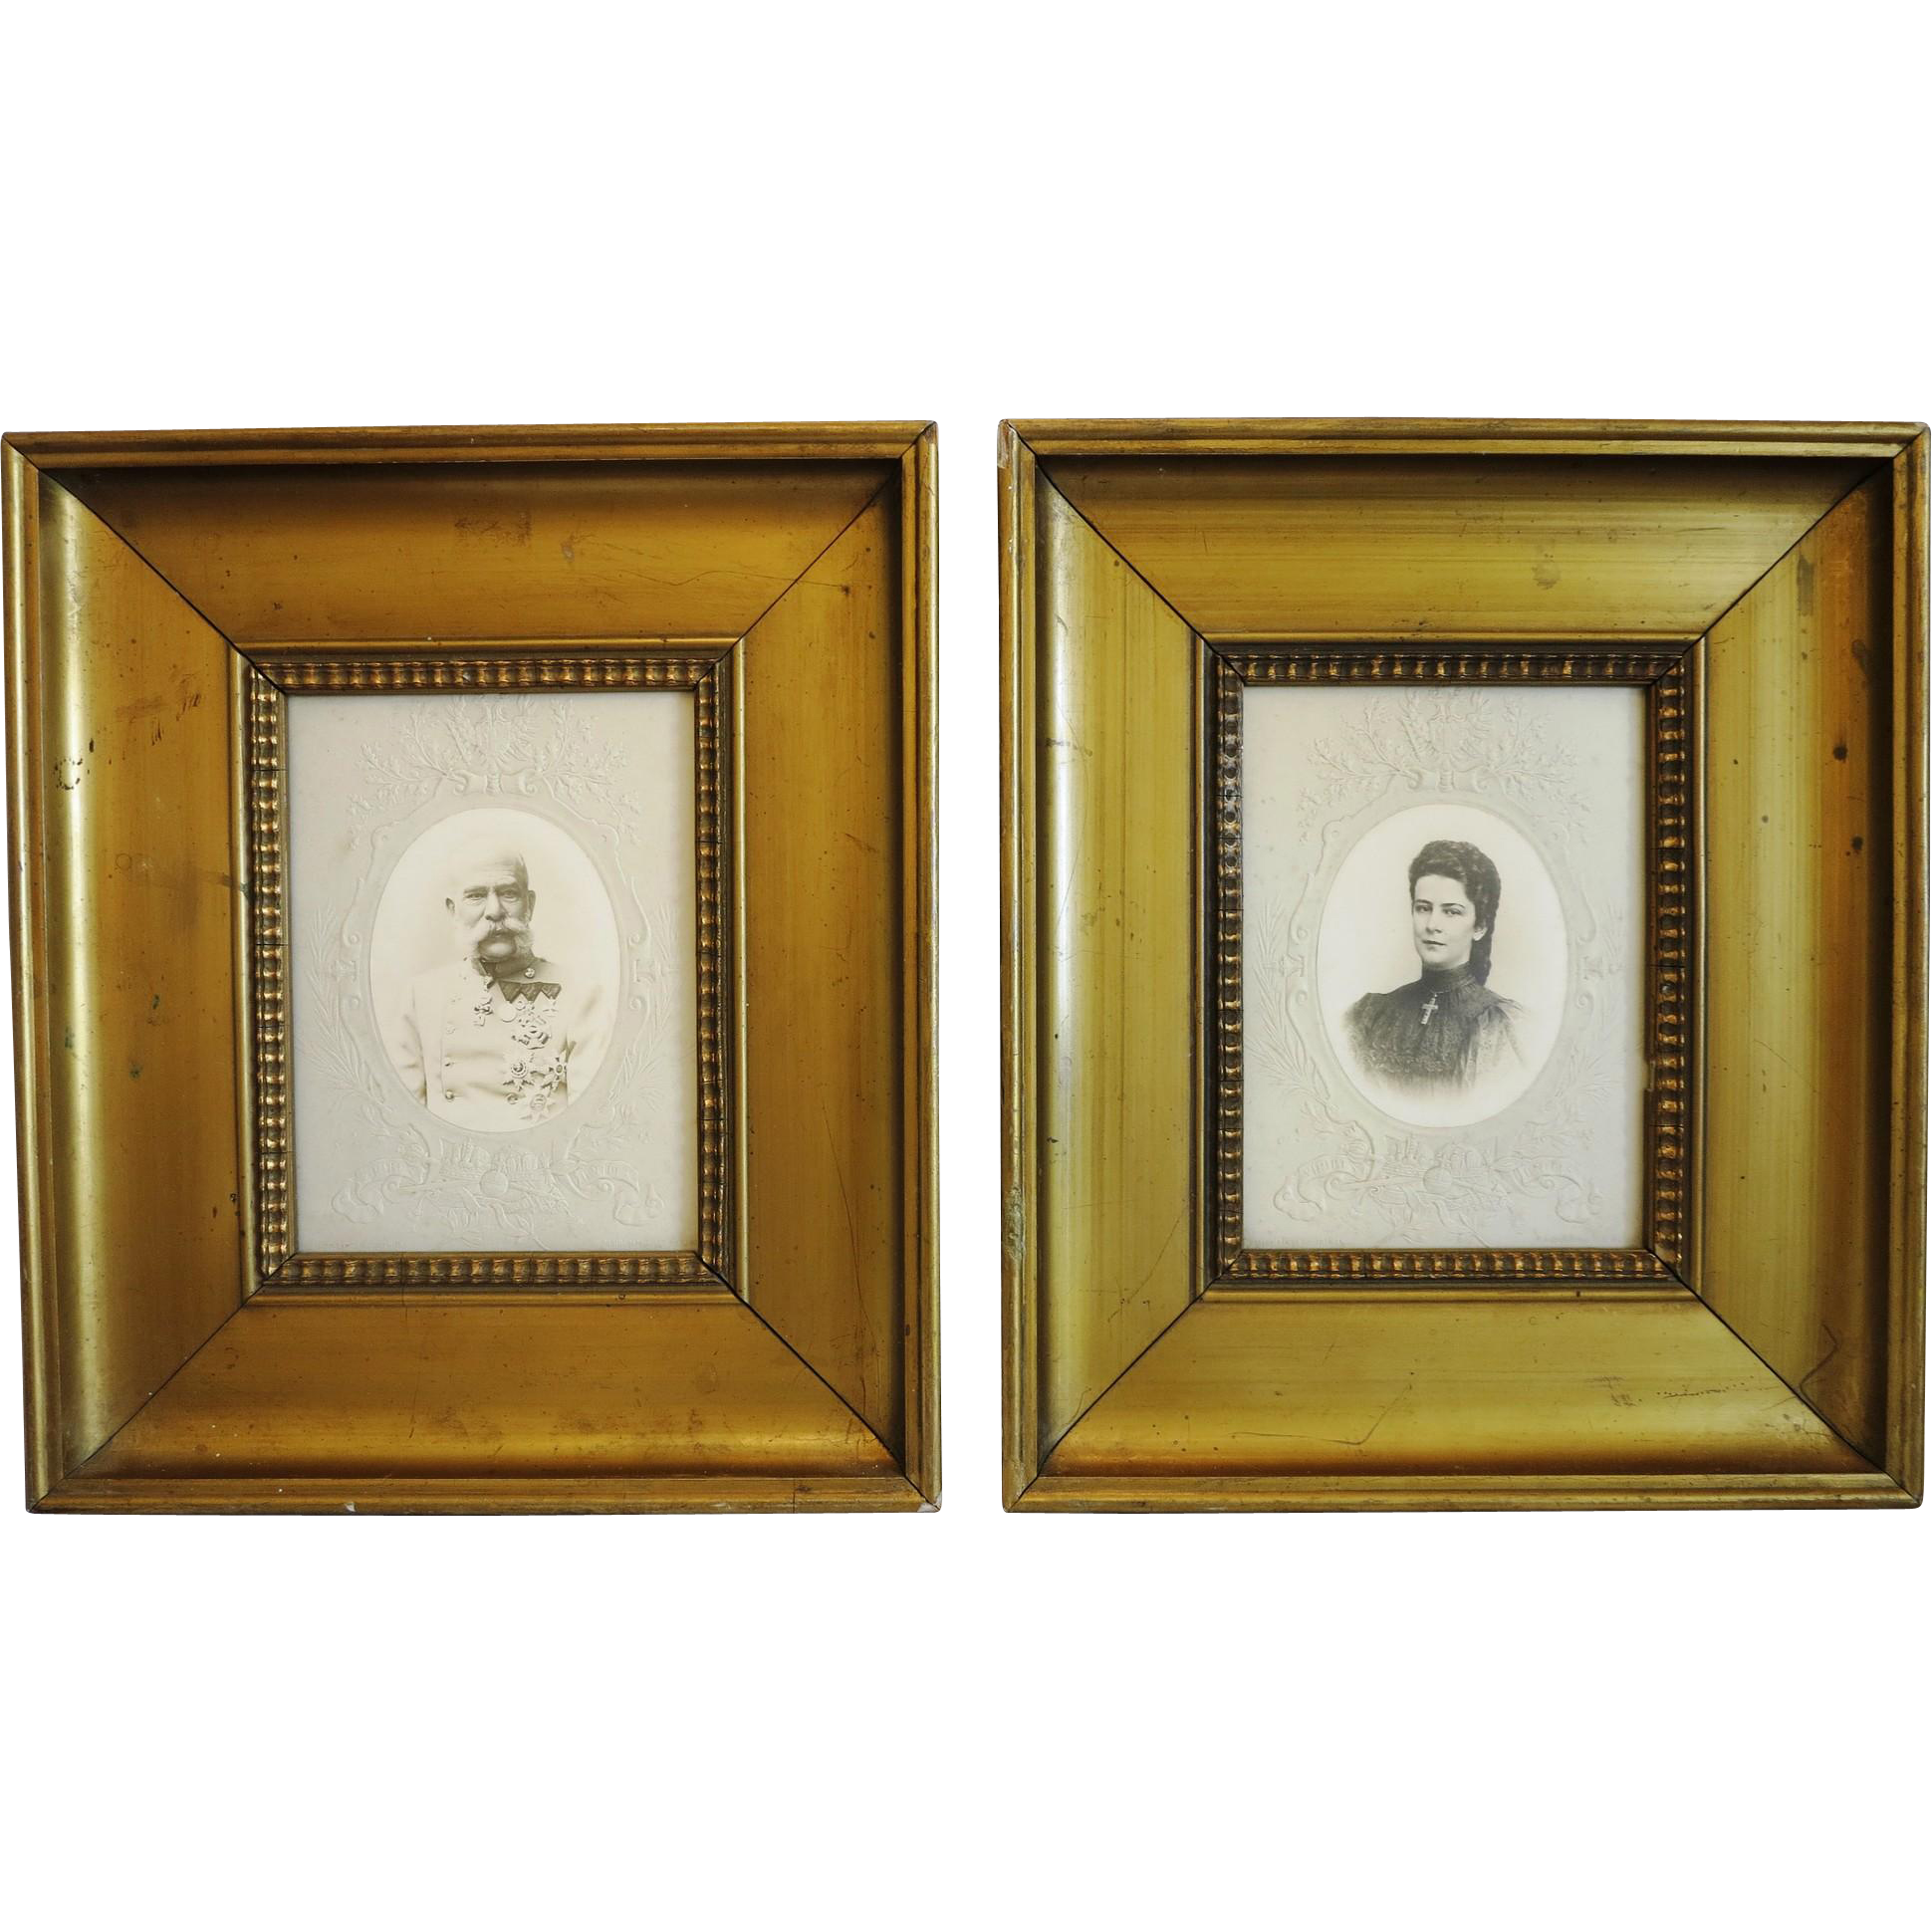 Pair of antique photos of Empress Sisi and her husband Emperor Franz Joseph I, 19th century